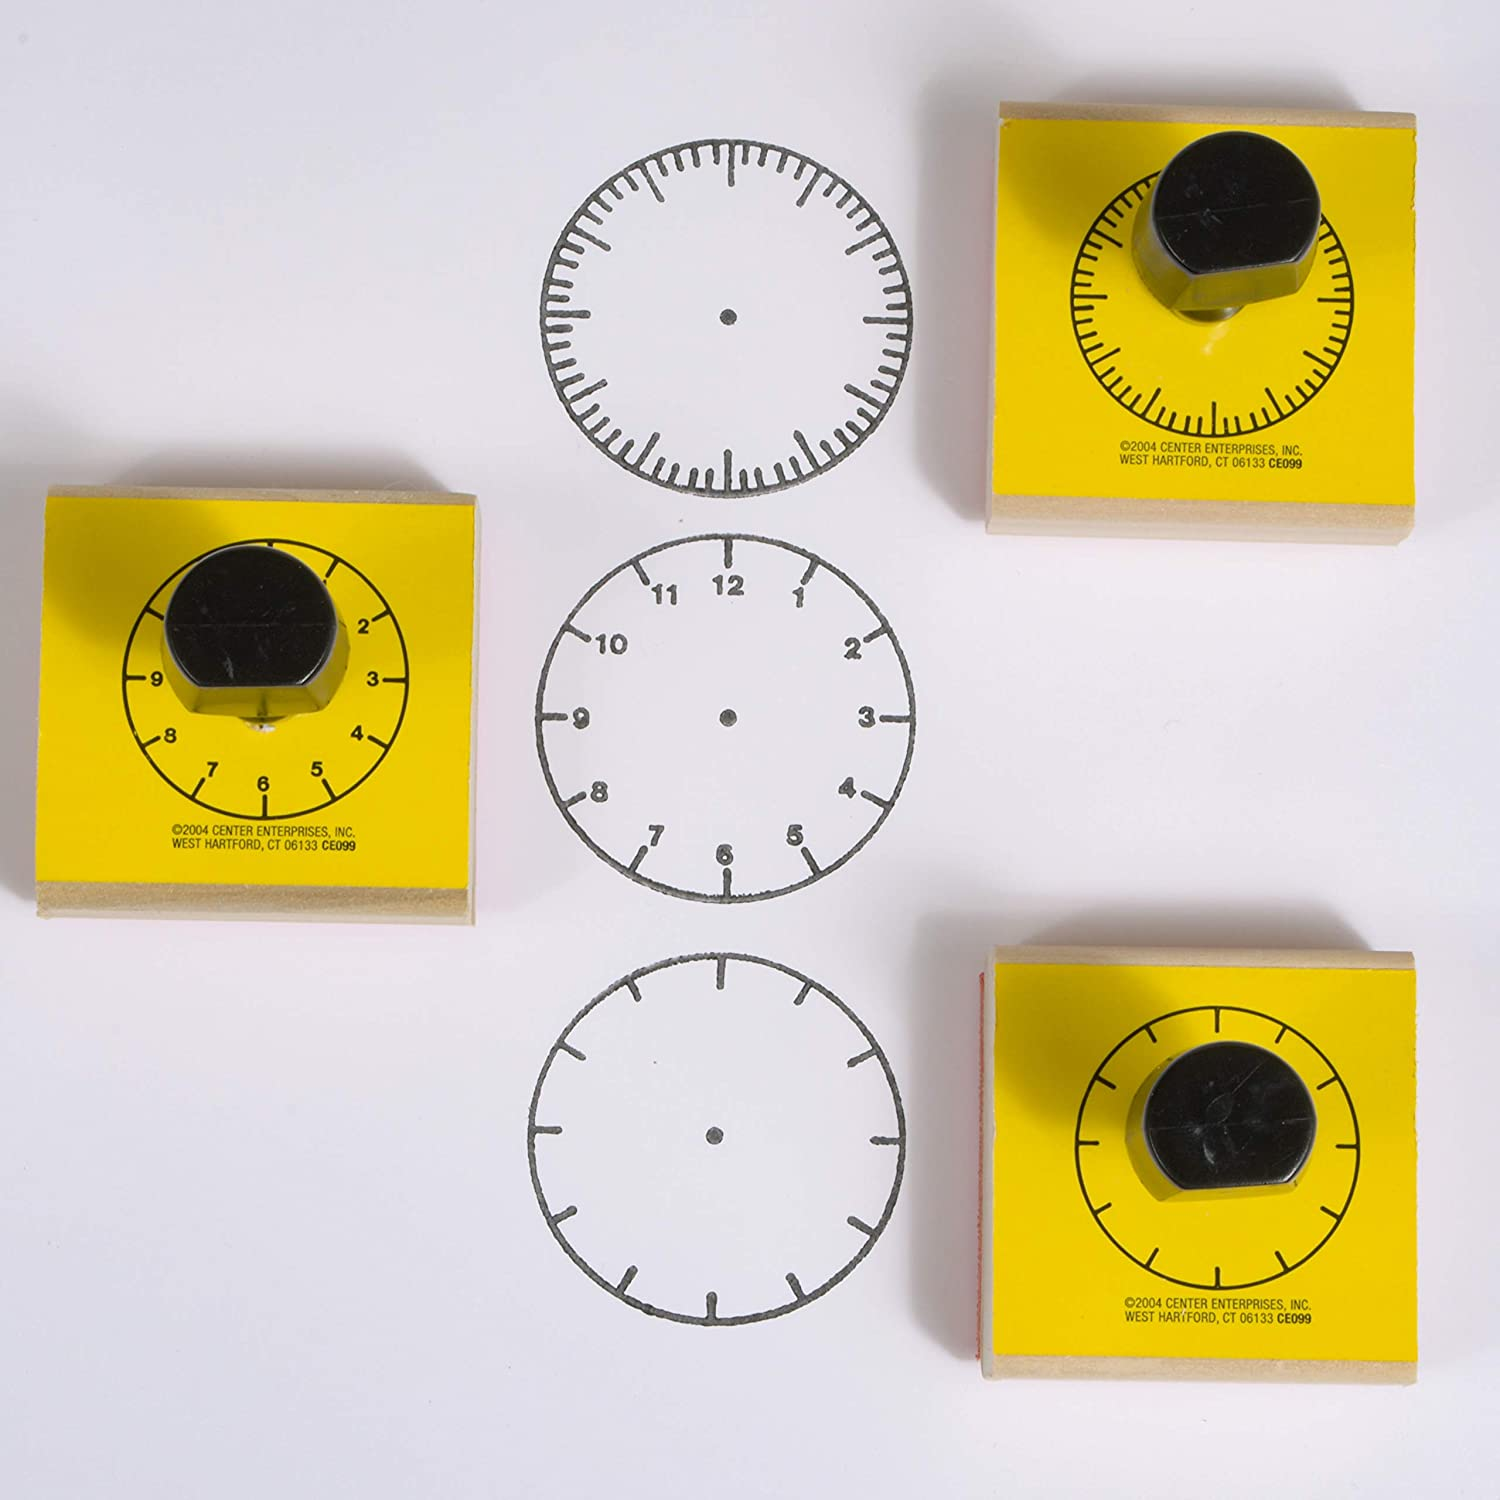 Three Clock Faces Stamps Set, Montessori ⏰ 木製時鐘印章一套三款組合, 趣味自由DIY練習